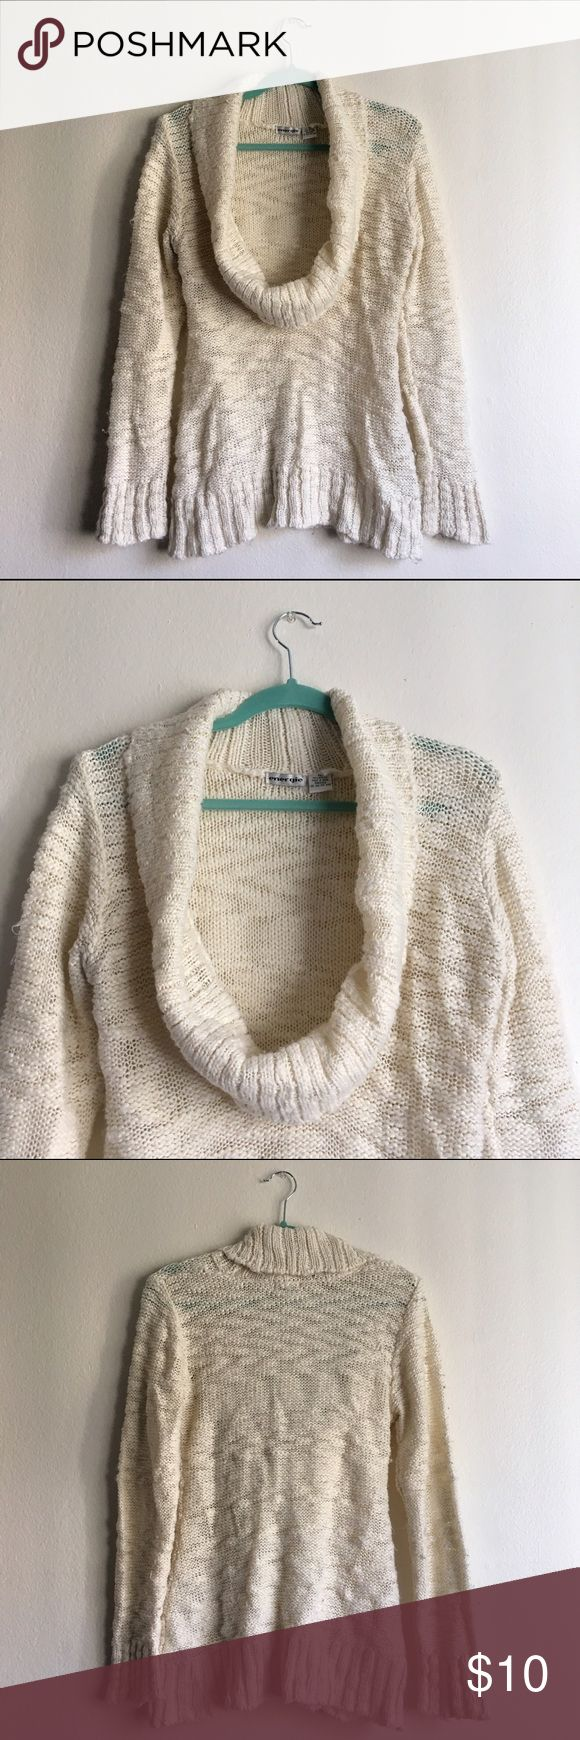 Cowl Neck Chunky Knit Sweater - Ribbed Energie - X-Large - Chunky knit off-white sweater with large cowl neck. Some pilling - will look like new with a quick touch up from a fabric shaver. No stains. Been in my closet forever, but I never end up wearing it. Perfect for winter! Warm and cute with jeans and boots. Energie Sweaters Cowl & Turtlenecks